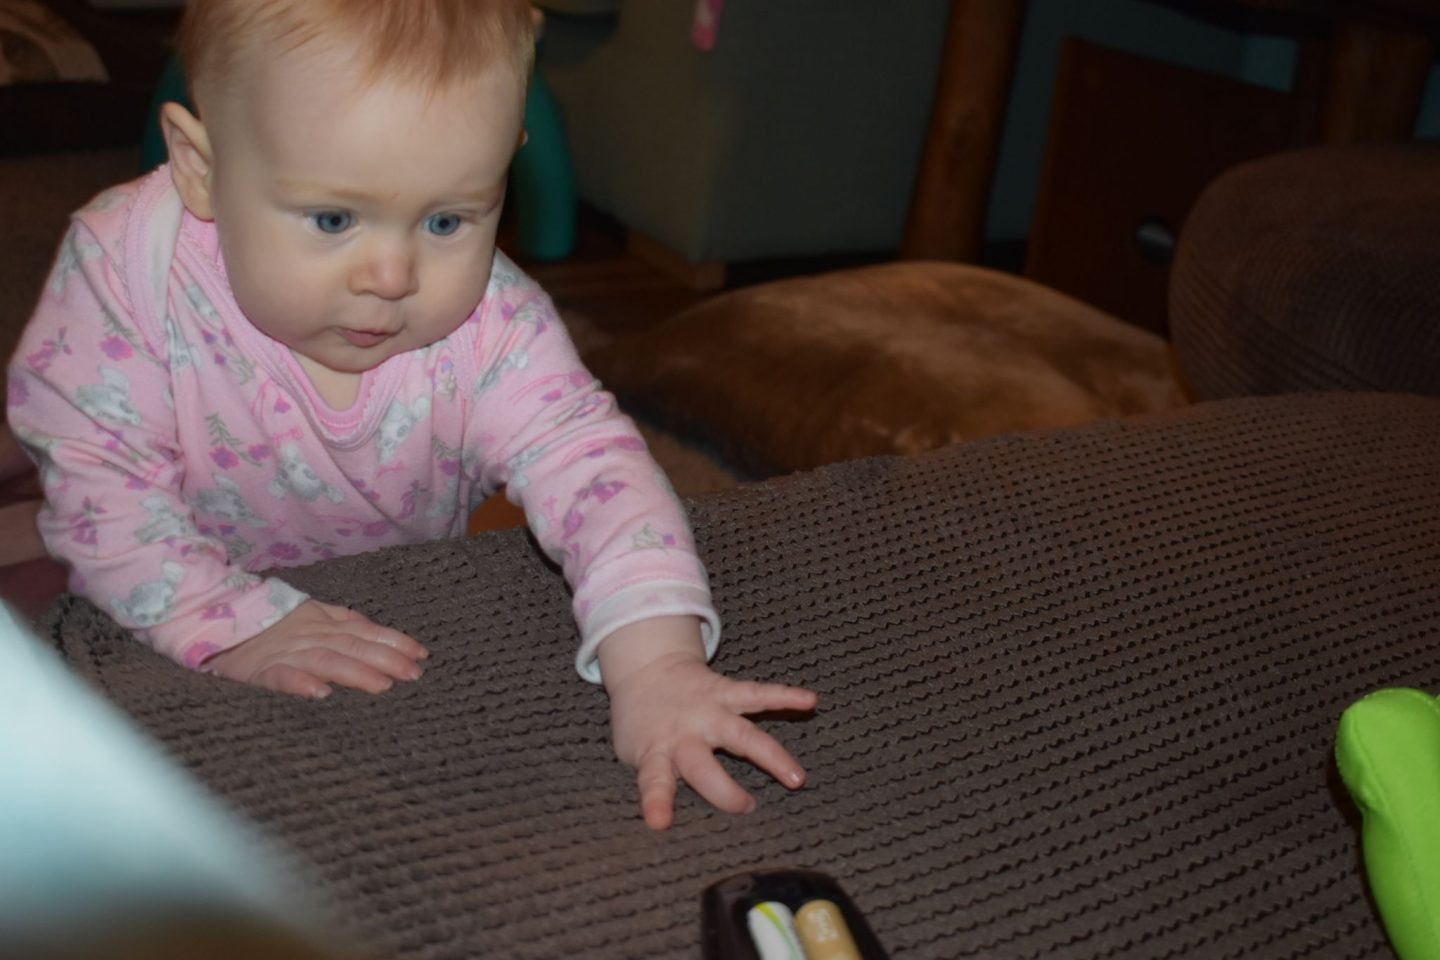 Baby reaching for a remote whilst standing